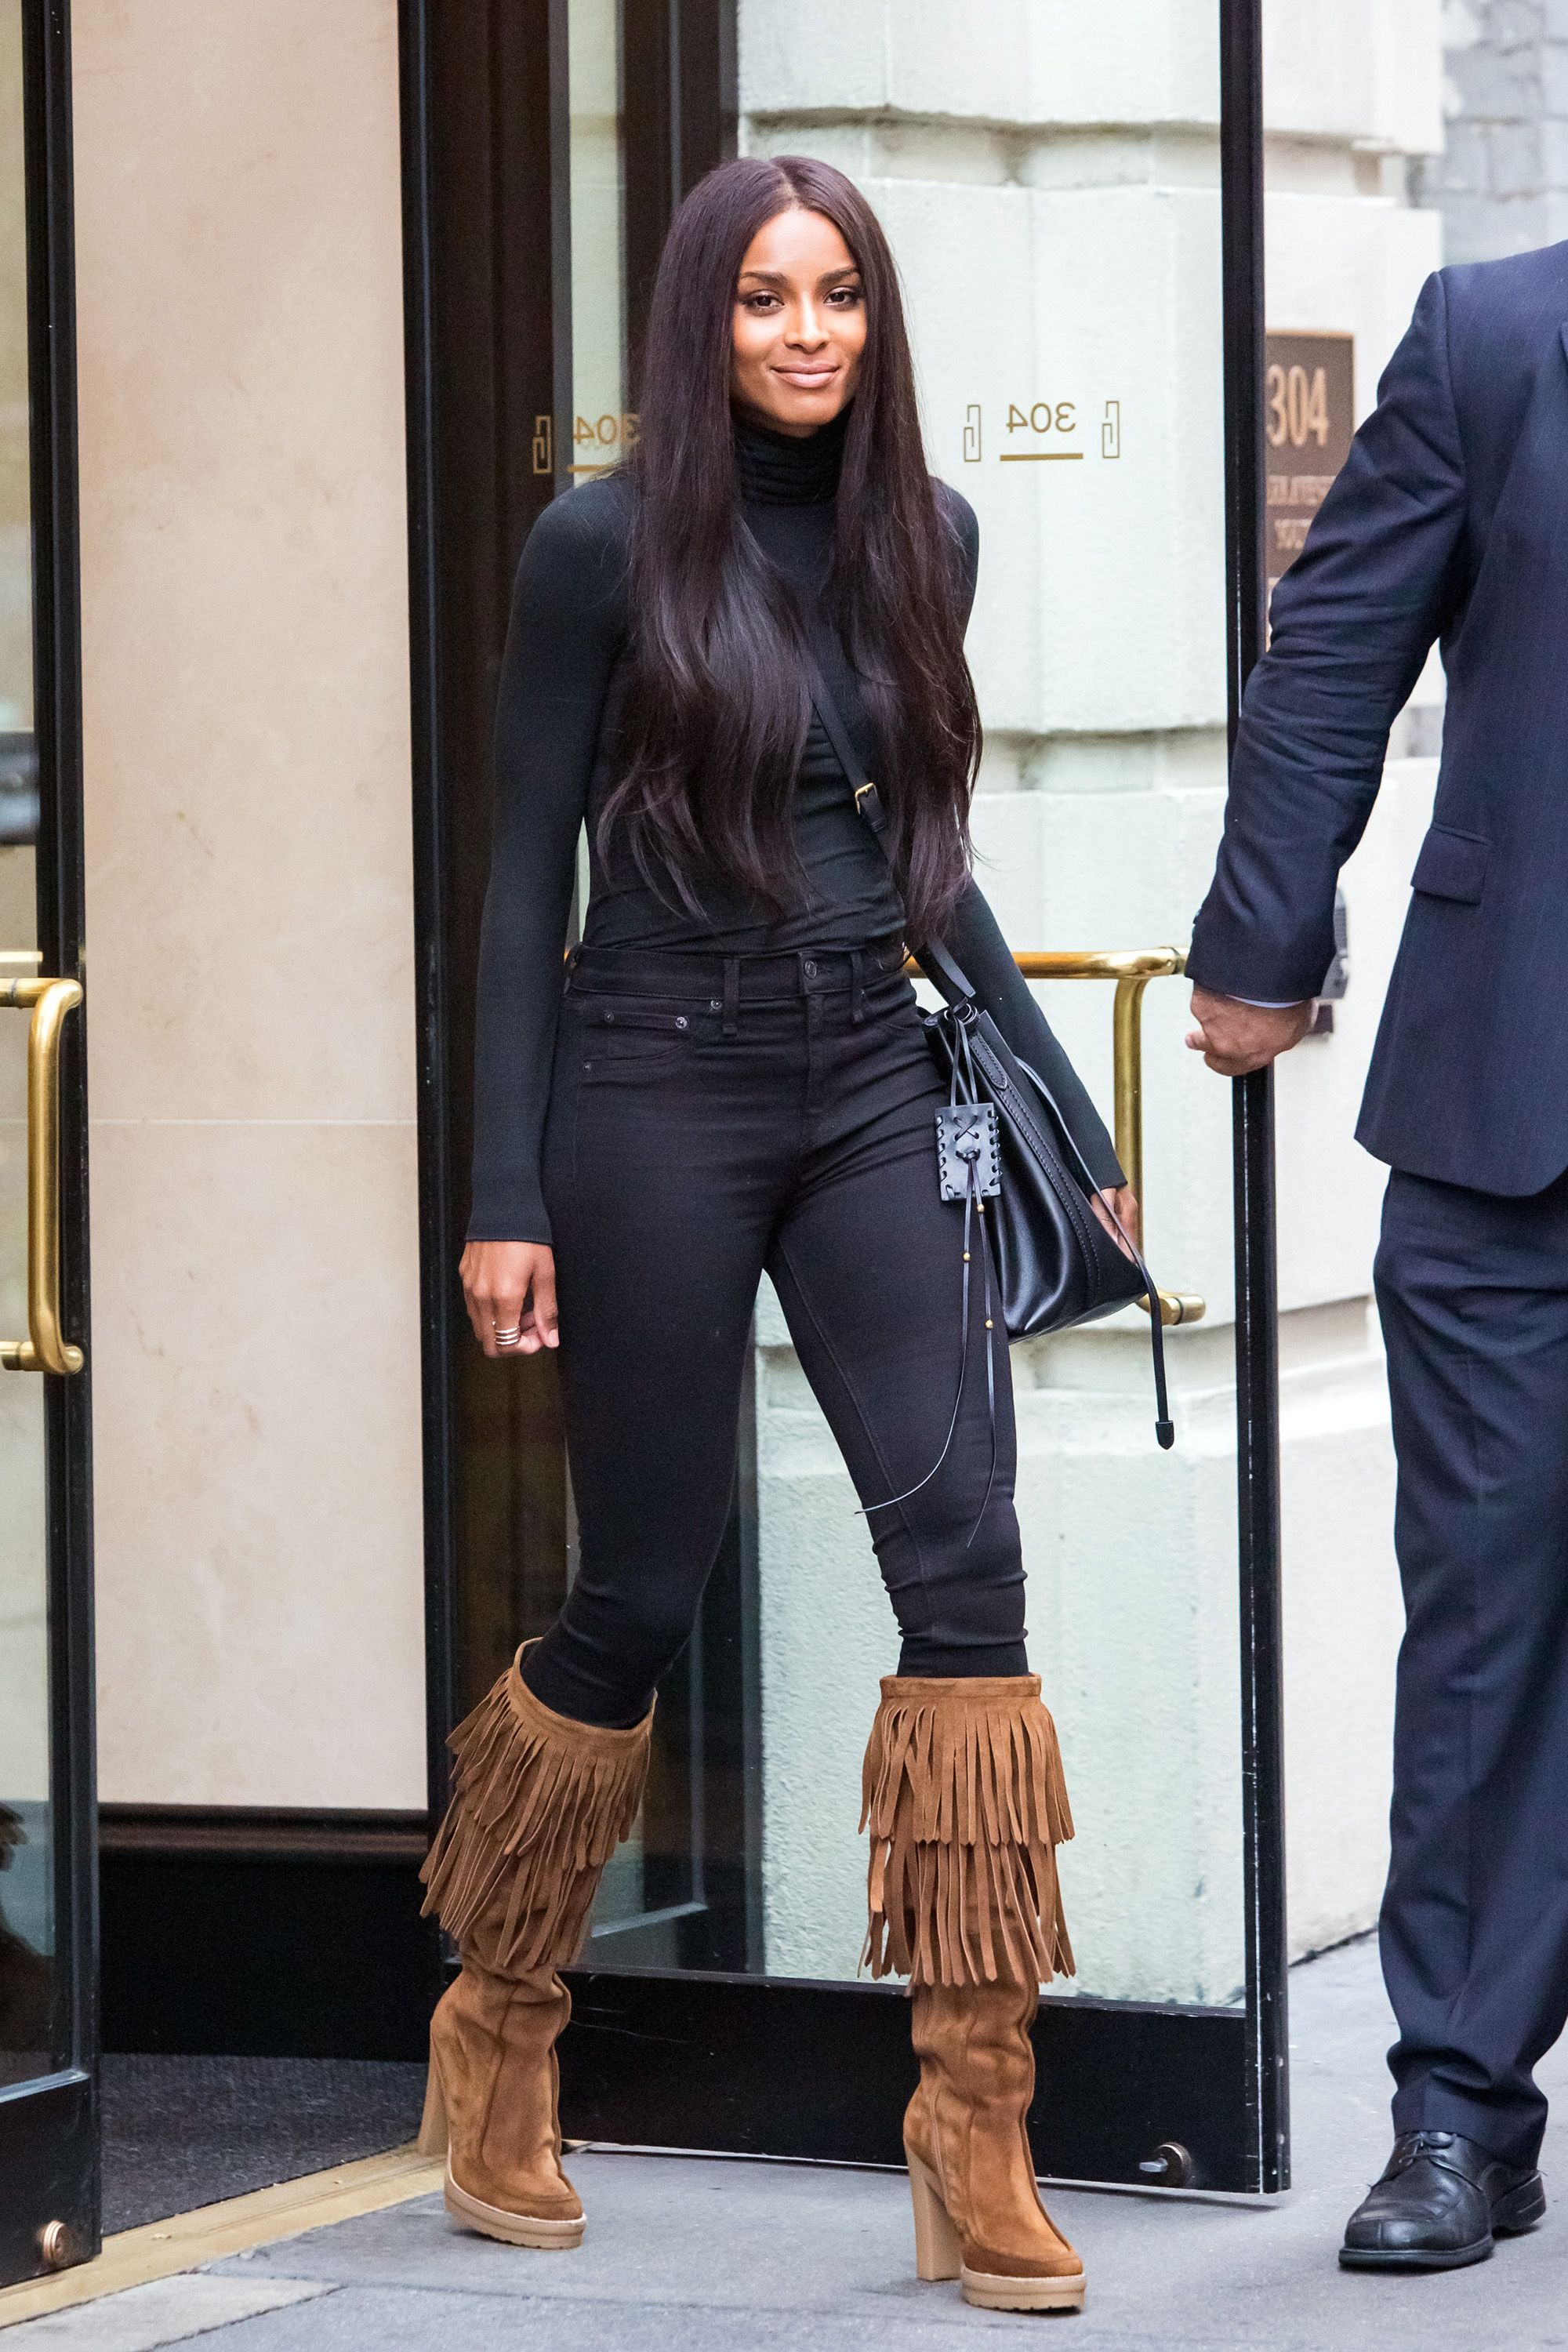 the only time i have actually liked and approved of fringe boots.